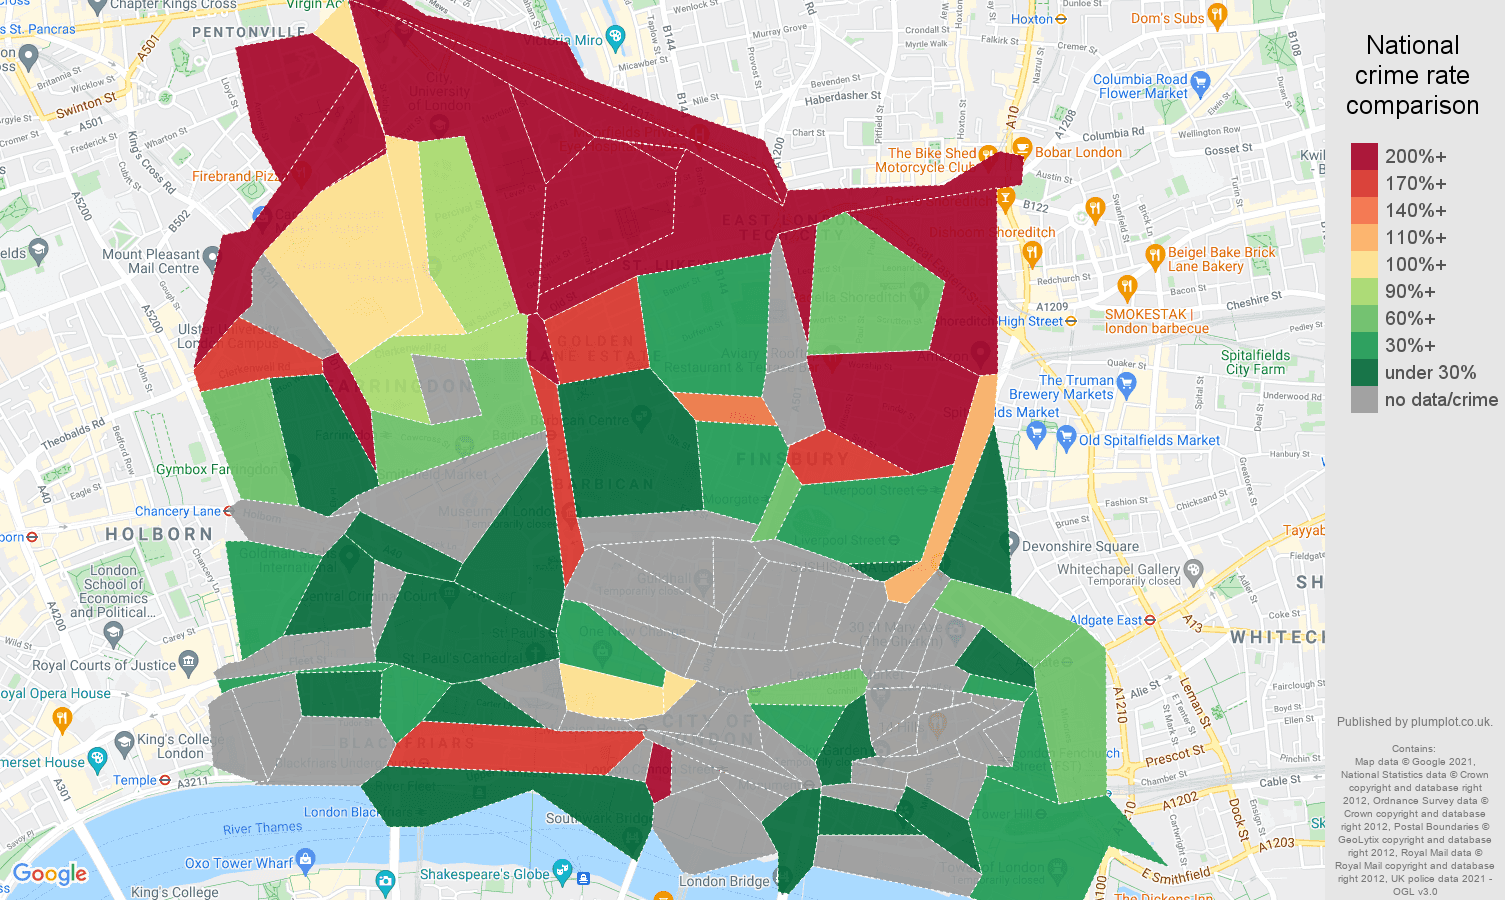 East Central London robbery crime rate comparison map